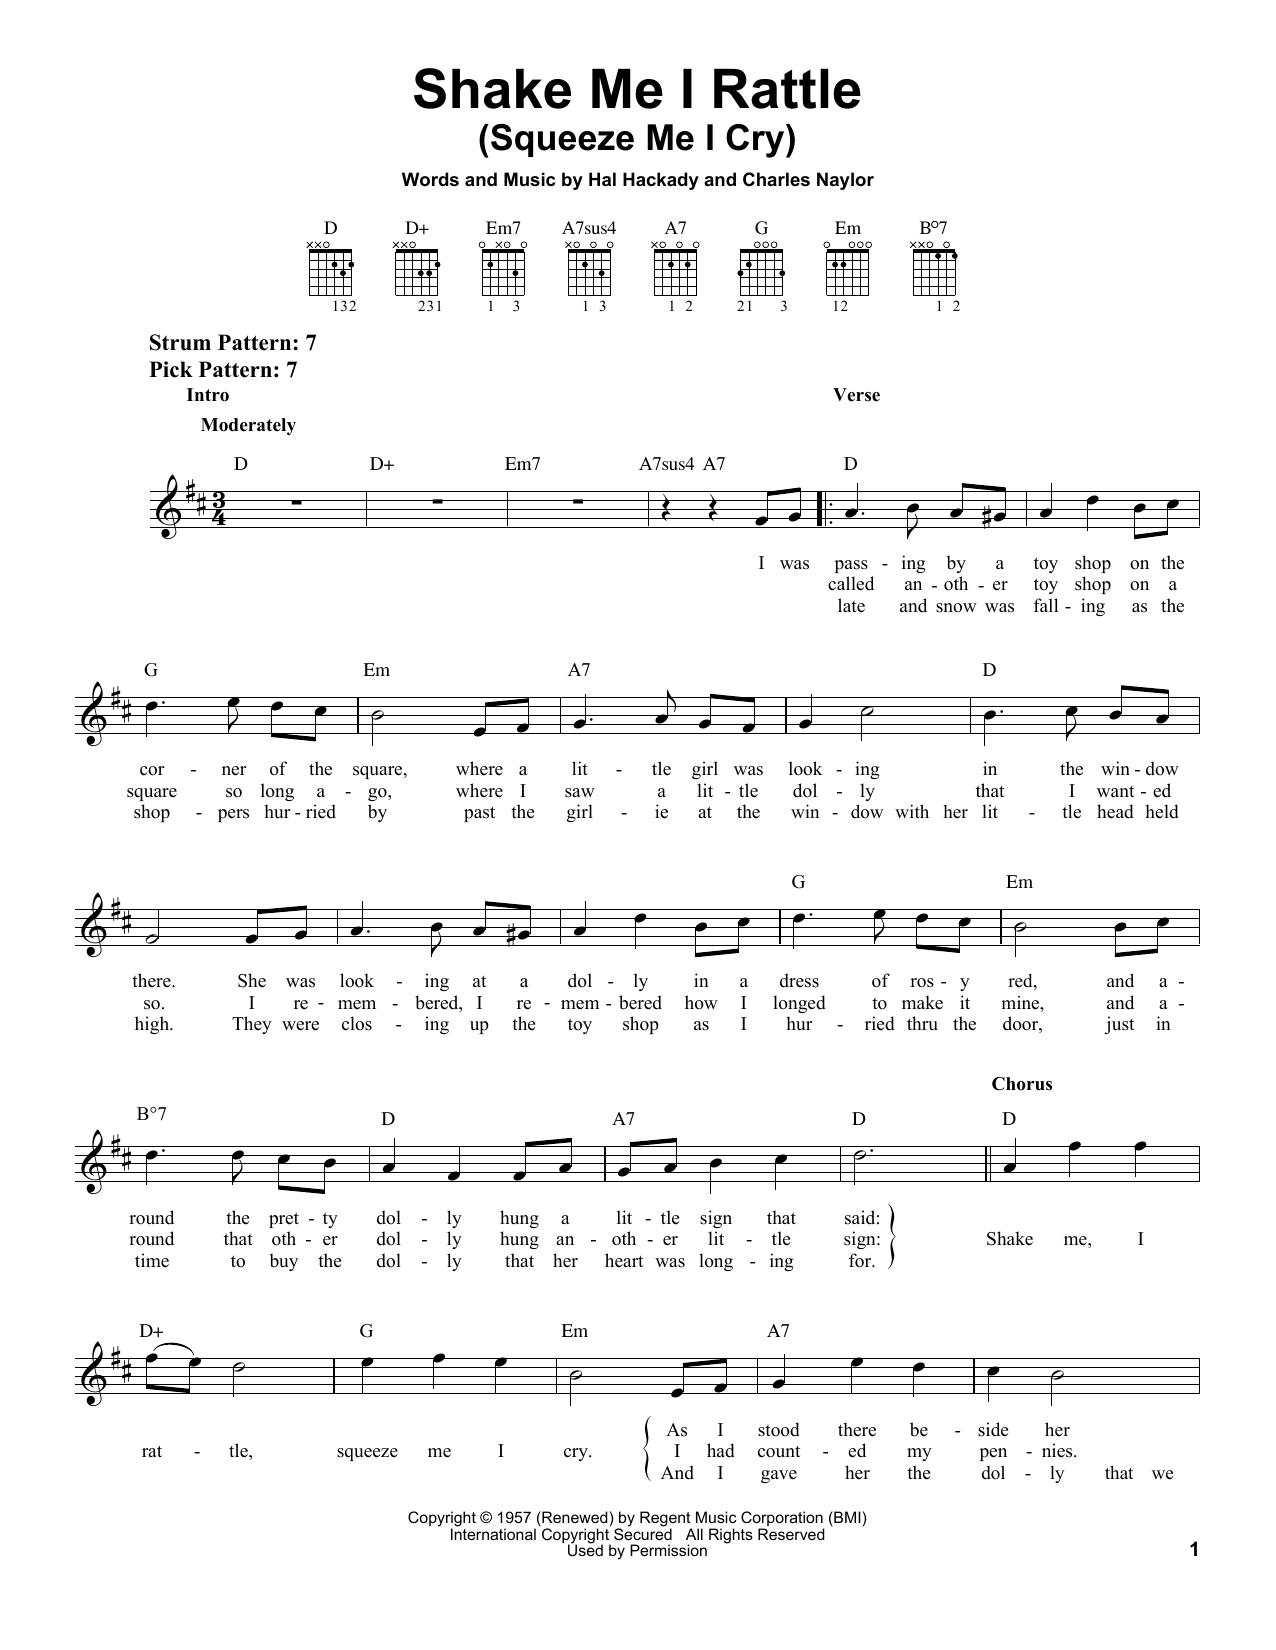 Marion Worth Shake Me I Rattle (Squeeze Me I Cry) sheet music notes and chords. Download Printable PDF.